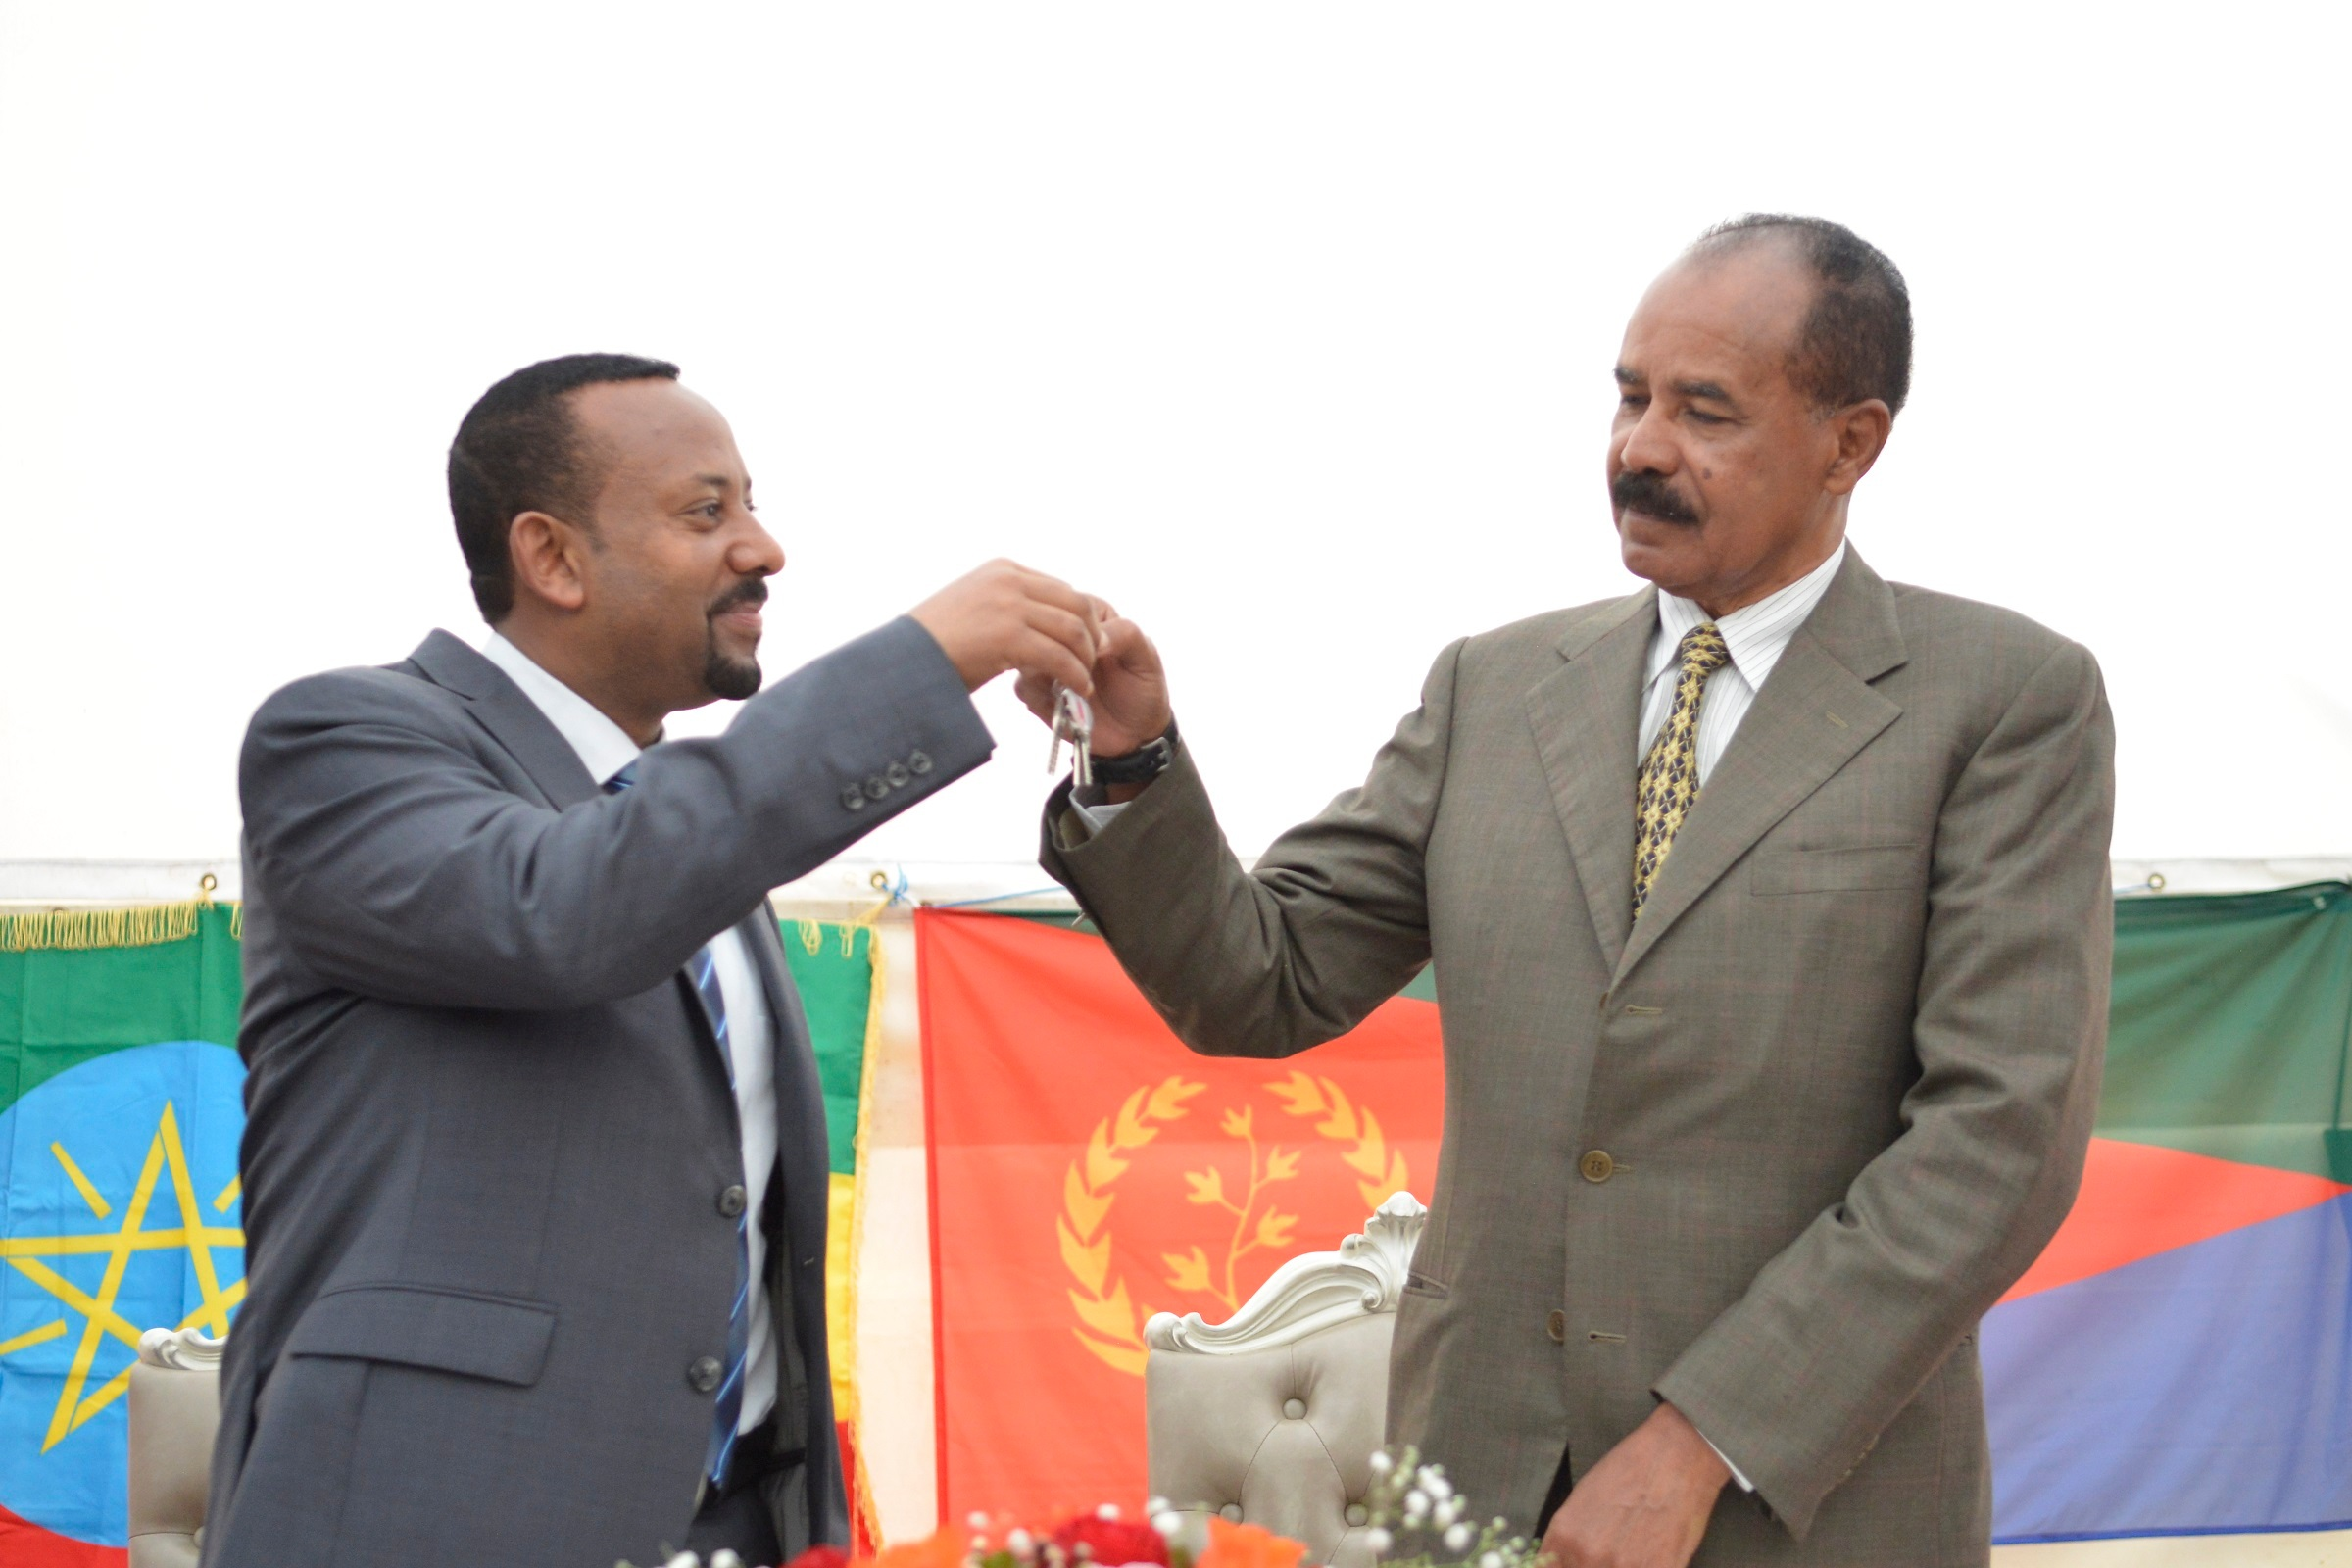 Abiy Ahmed and Isaias Afwerki Re-opening of the Eritrean embassy in the Ethiopian capital Addis Ababa, Ethiopia - 16 Jul 2018 Ethiopia's Prime Minister Abiy Ahmed (L) and Eritrea's President Isaias Afwerki (R) attend the re-opening of the Eritrean embassy in the Ethiopian capital Addis Ababa, Ethiopia, in a brief ceremony 16 July 2018. The leaders declared their 'state of war' over one week ago and Isaias spent the weekend in Ethiopia. Eritrea reopened its embassy in Ethiopia 16 July in further evidence of a rapid thaw between two countries that a week ago ended two decades of military stalemate over a border war in which tens of thousands died.